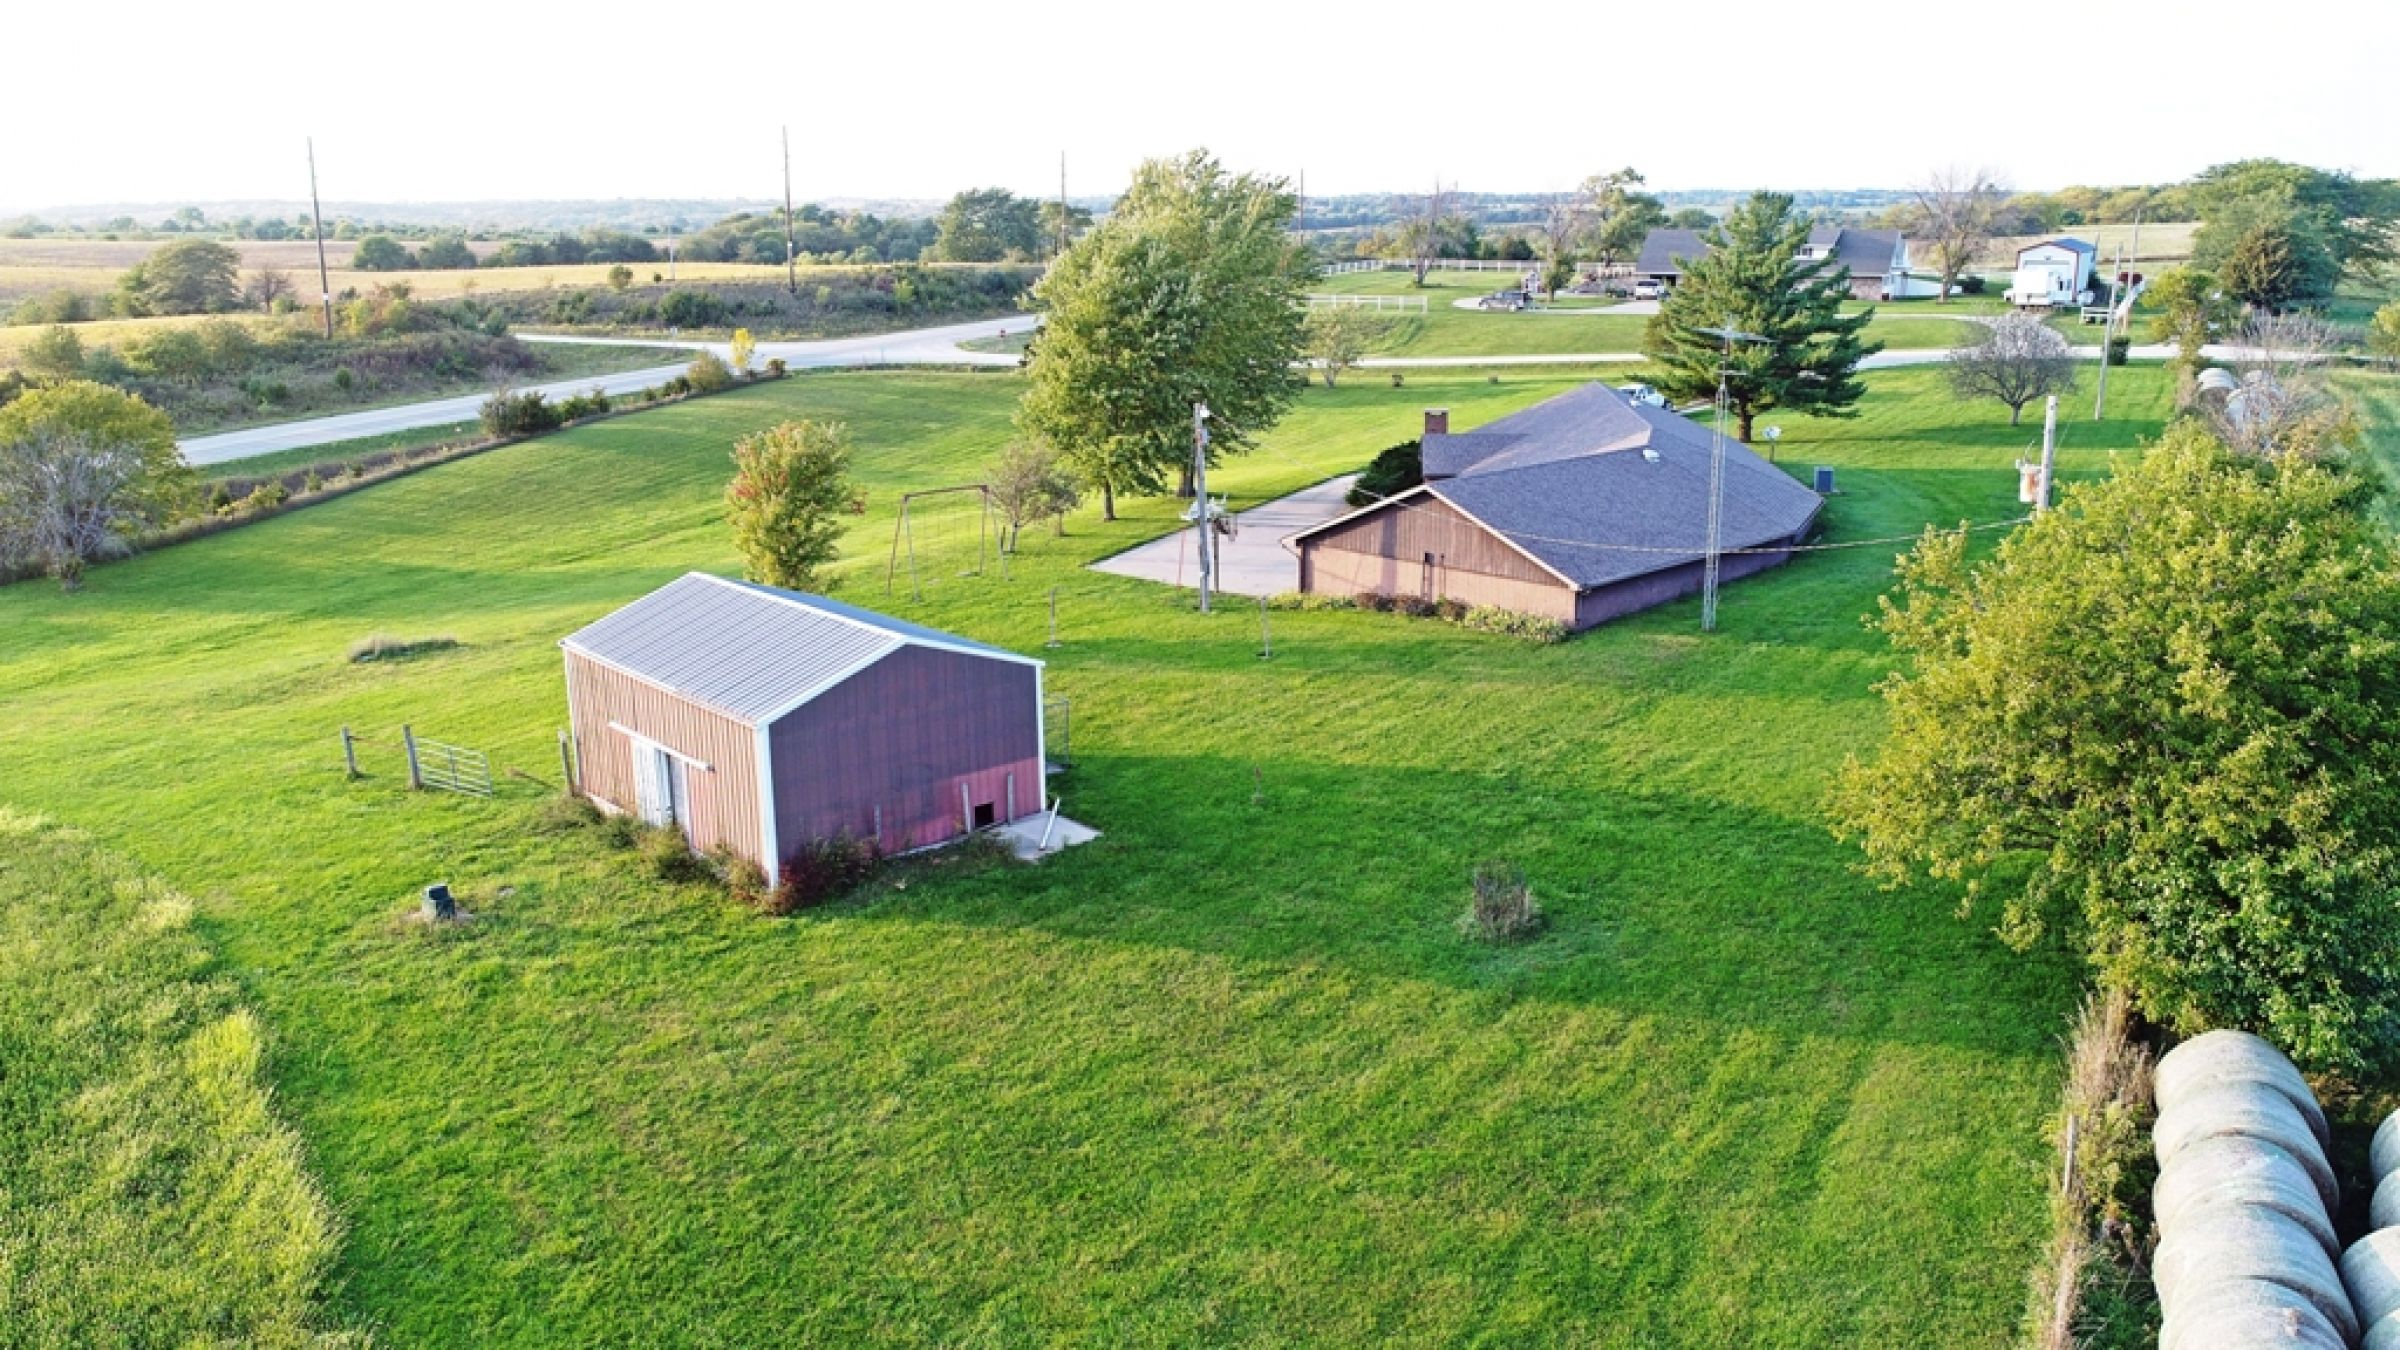 residential-land-wayne-county-iowa-35-acres-listing-number-15183-0-2020-09-24-201014.JPG